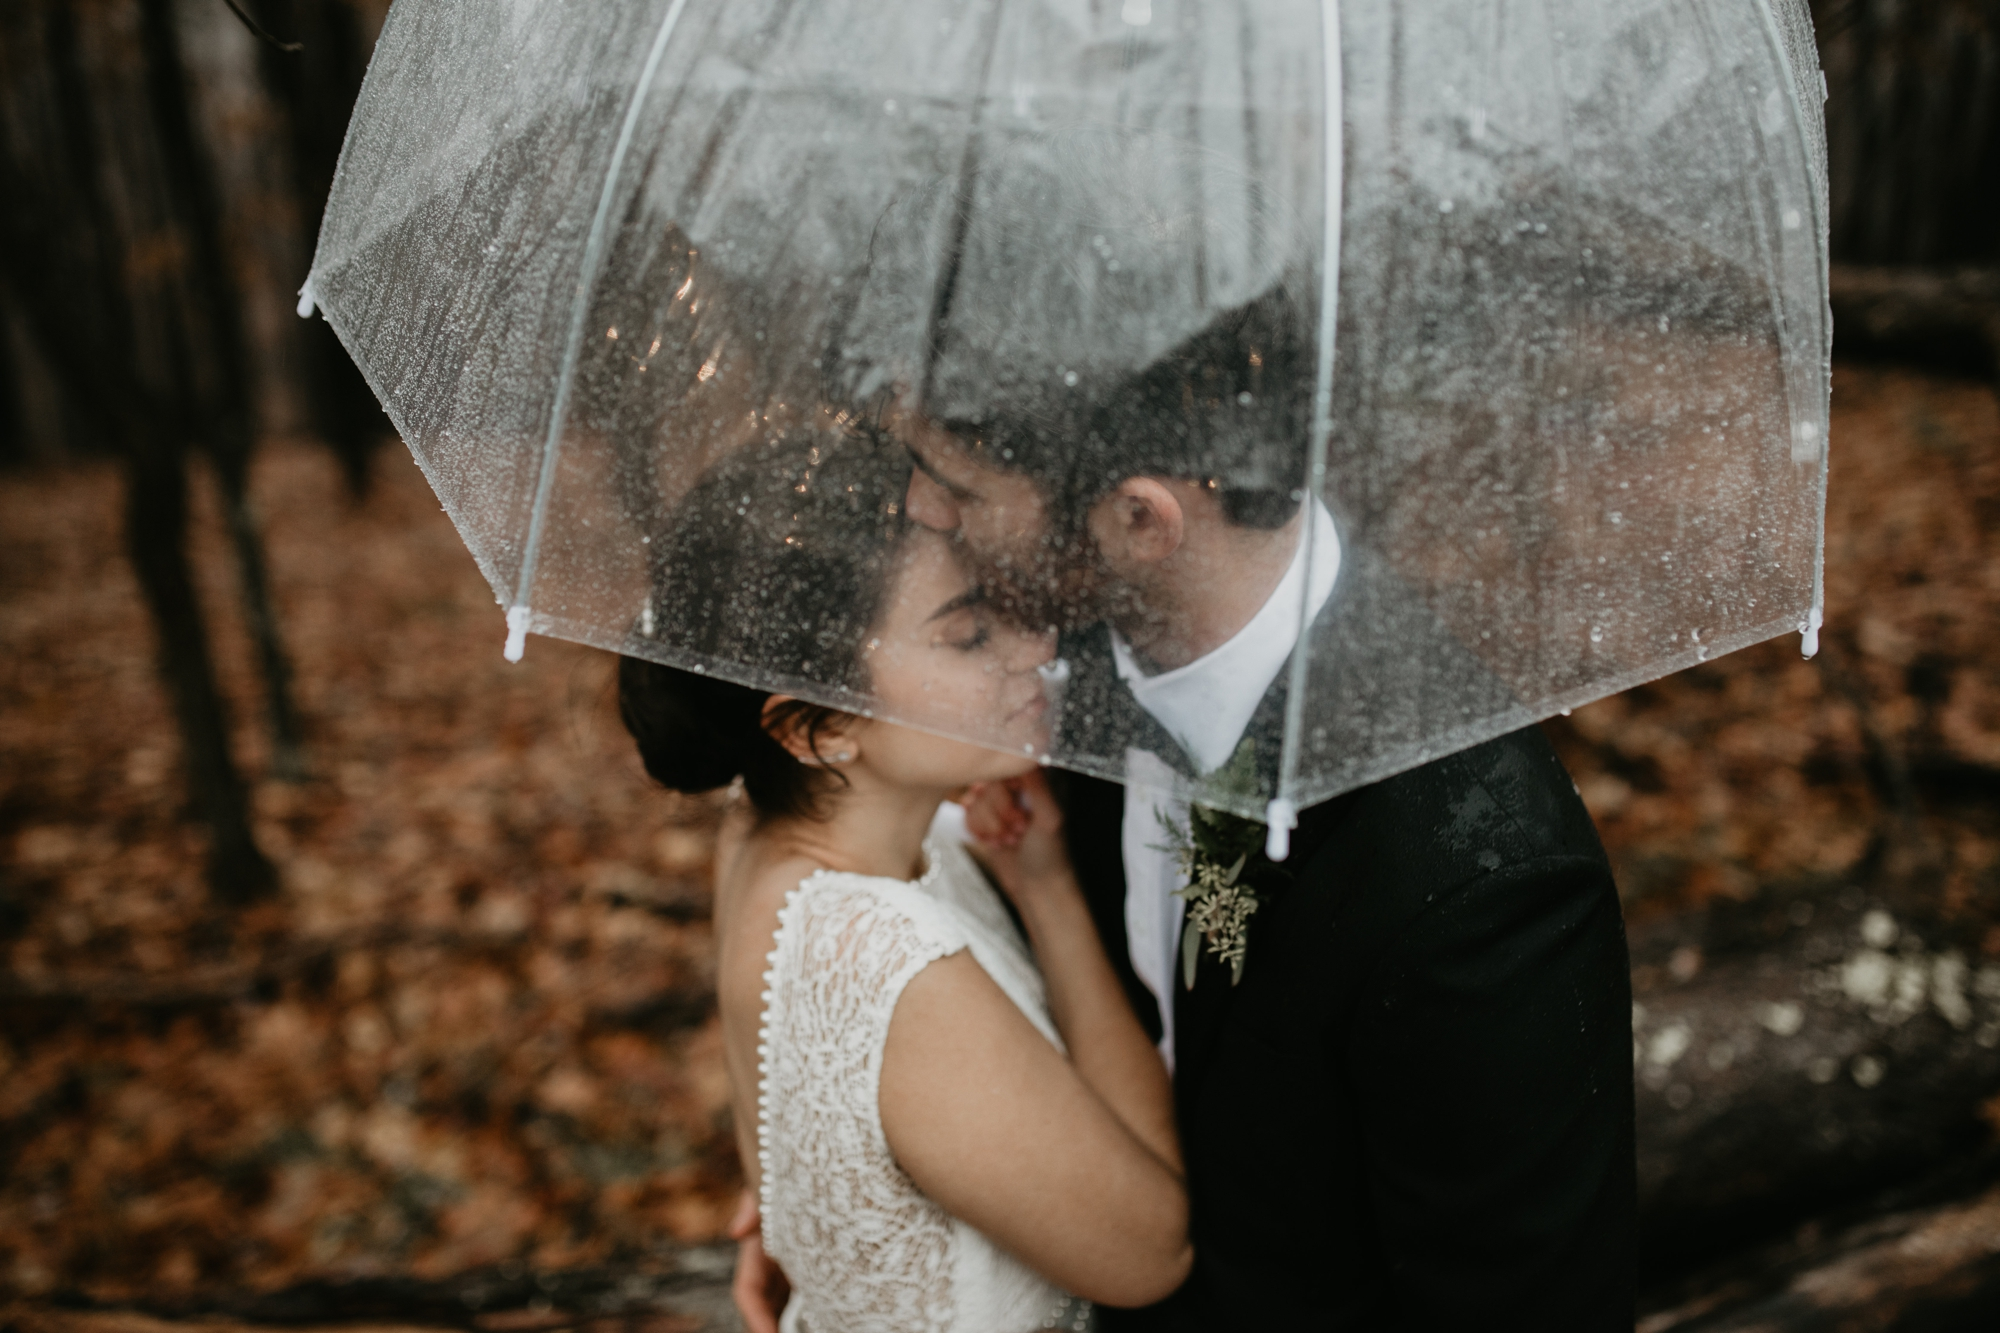 Pittsburgh Wedding photography, Pittsburgh wedding photographer, pittsburgh Wedding, Pittsburgh fall wedding, Pittsburgh rainy wedding, DIY floral wedding in Pittsburgh, Pittsburgh Wedding at North Park Lodge, Cold and rainy wedding, Pittsburgh rain photos, Rachel Rowland Photography, Fun pittsburgh wedding photos, luxury wedding photographer